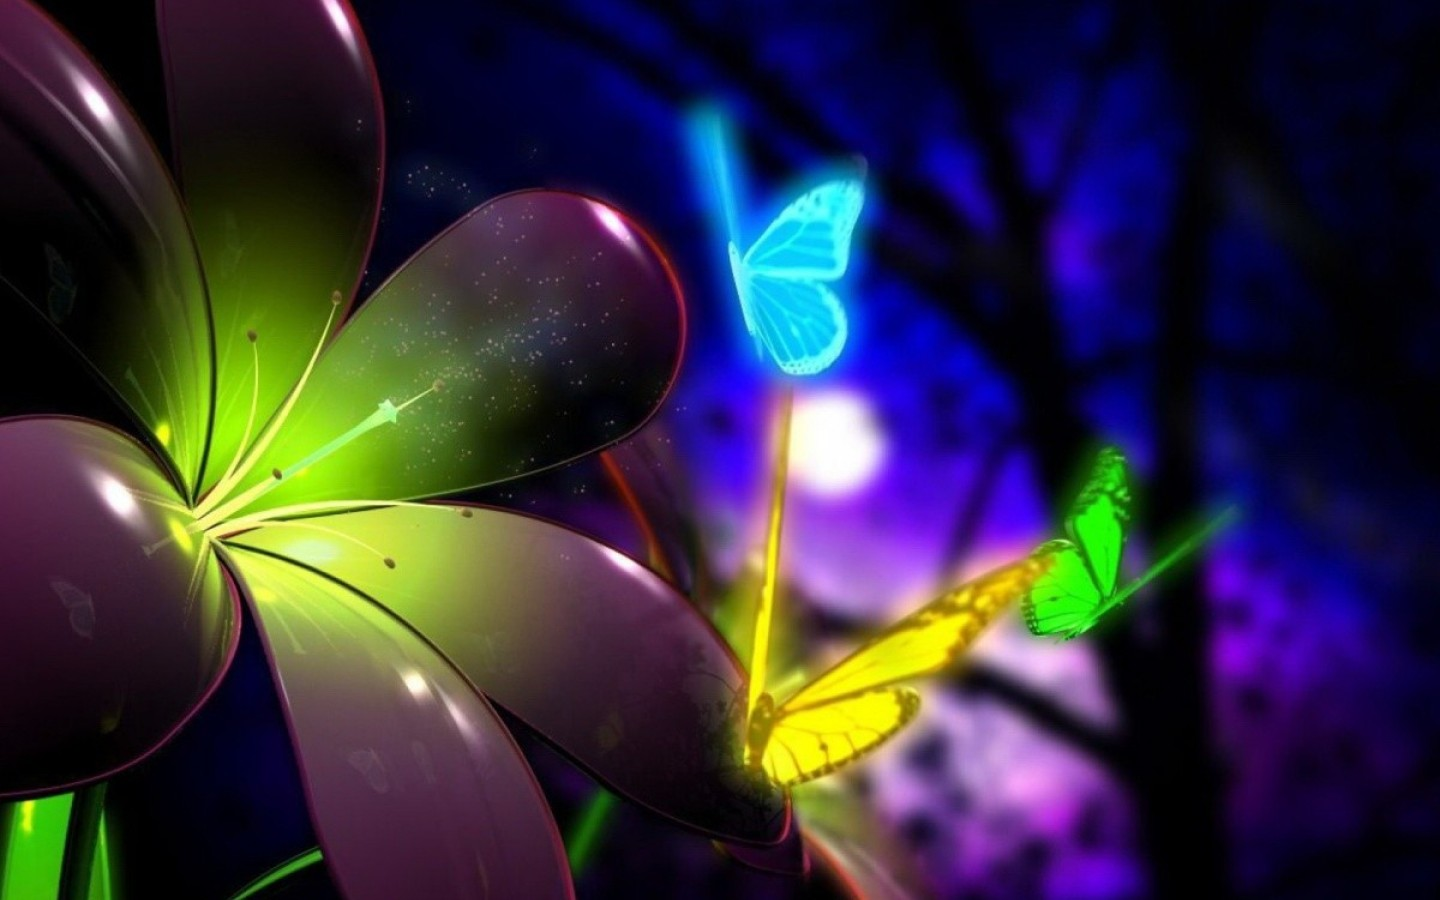 butterflies hd tablet wallpaper share this awesome hd tablet wallpaper 1440x900